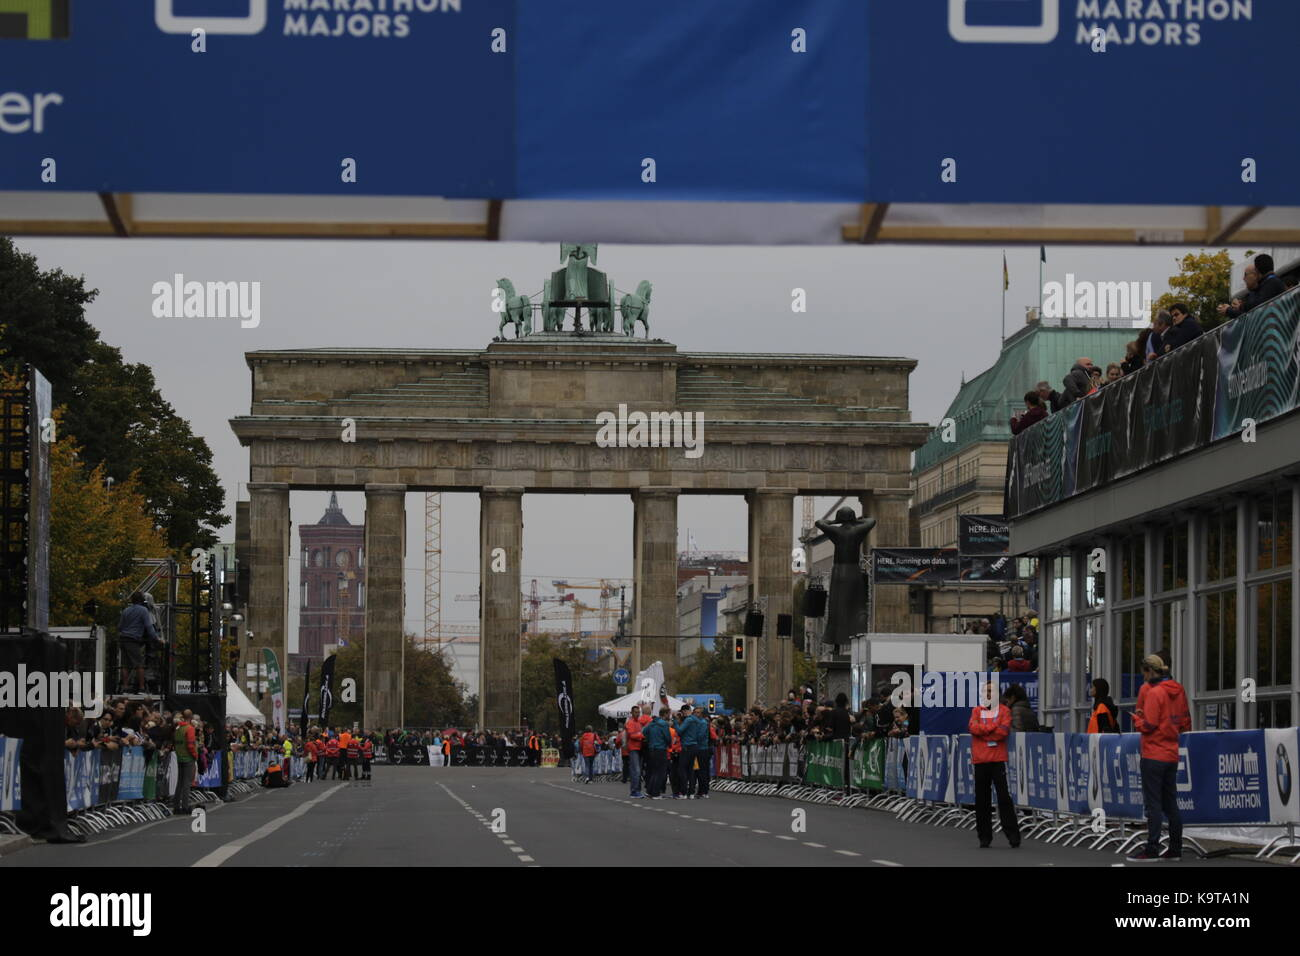 Berlin, Germany. 23rd Sep, 2017. View from the finishing line towards the Brandenburg Gate. Over 5,500 skater took part in the 2017 BMW Berlin Marathon Inline skating race, a day ahead of the Marathon race. Bart Swings from Belgium won the race in 58:42 for the 5th year in a row. Credit: Michael Debets/Pacific Press/Alamy Live News Stock Photo